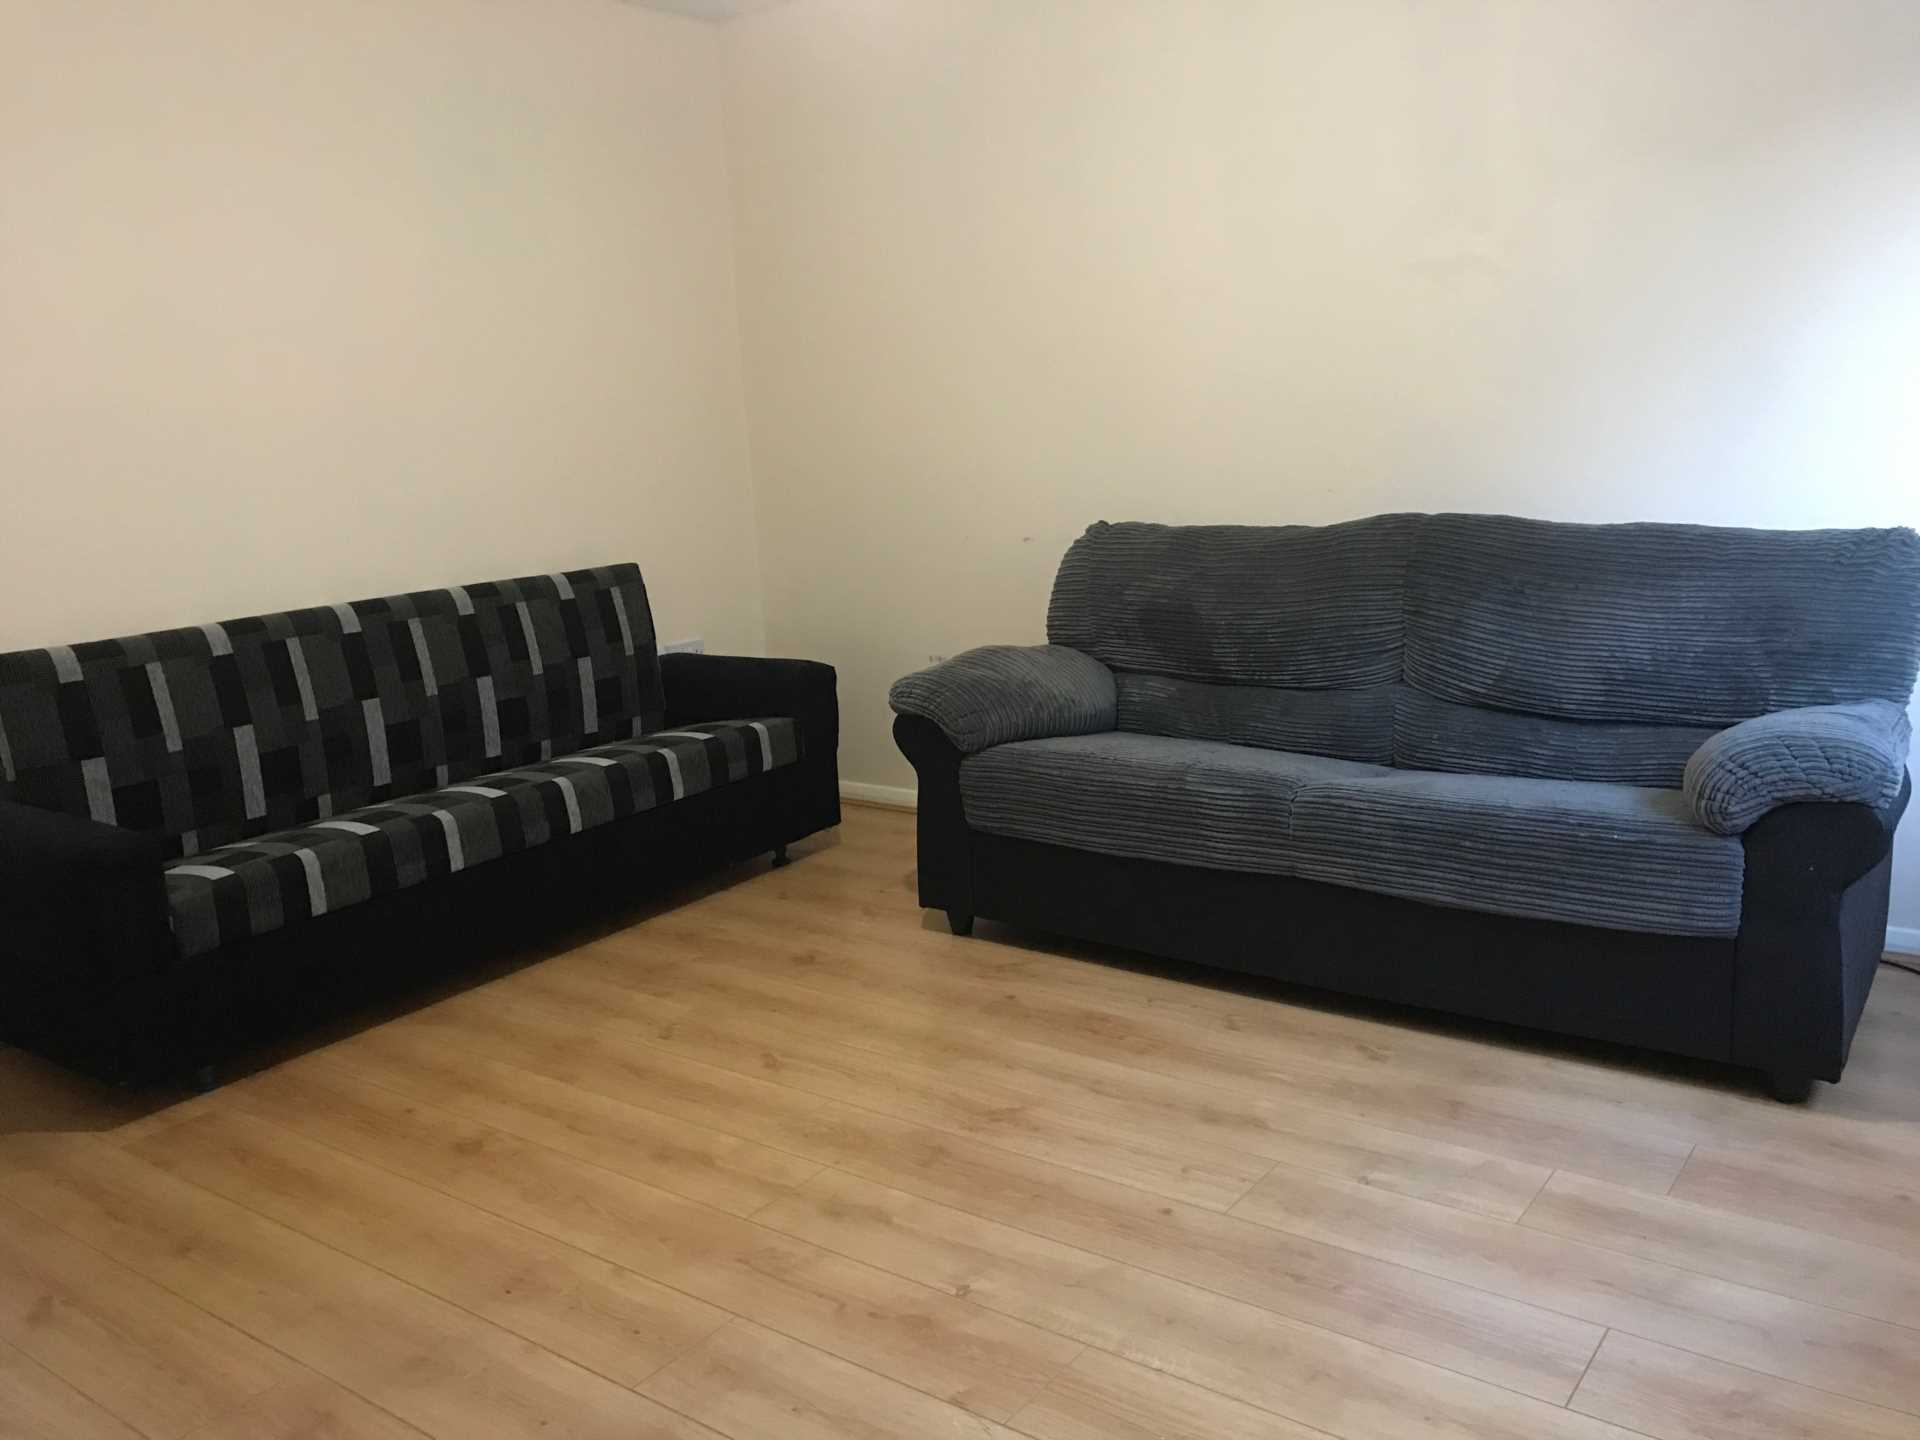 Perchfoot Close - 3 bedroom student home fully furnished, WIFI & bills included - NO FEES, Image 6